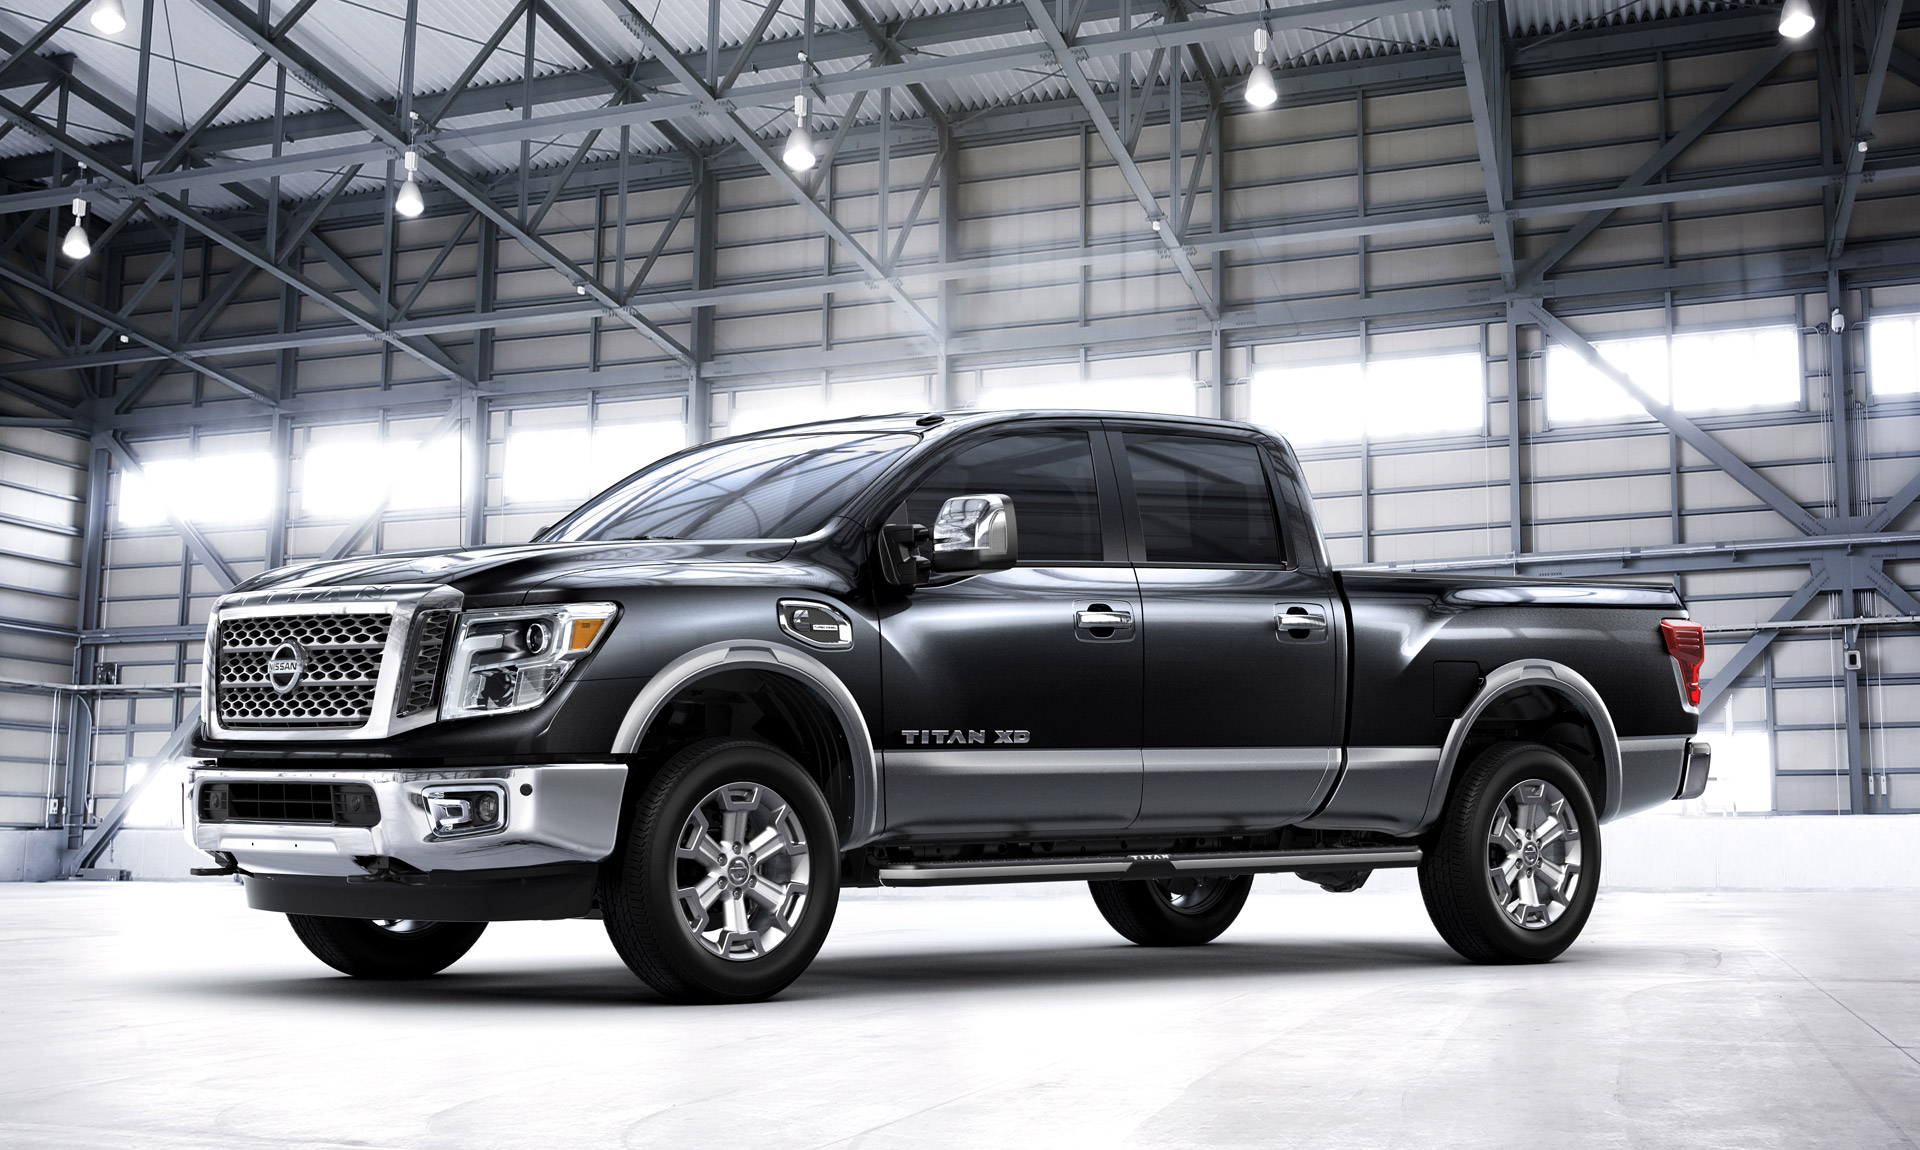 2016 Nissan Titan Xd Black (View 10 of 10)